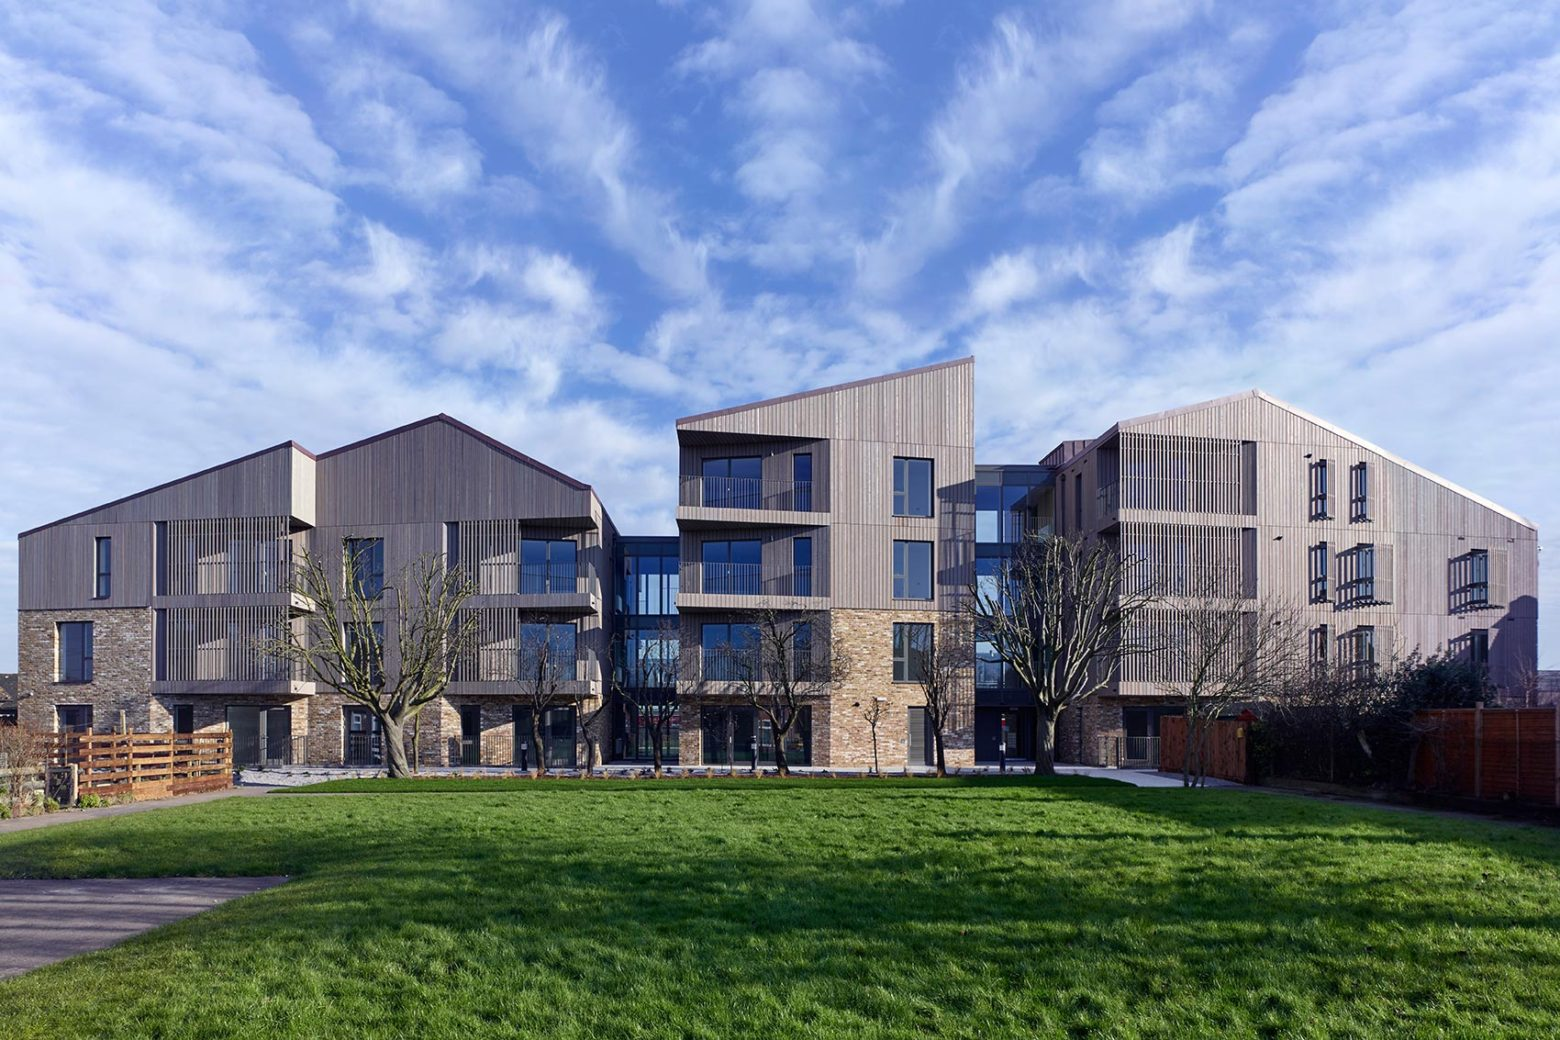 Bruyn's Court published as an exemplar project by the Housing Learning Improvement Network